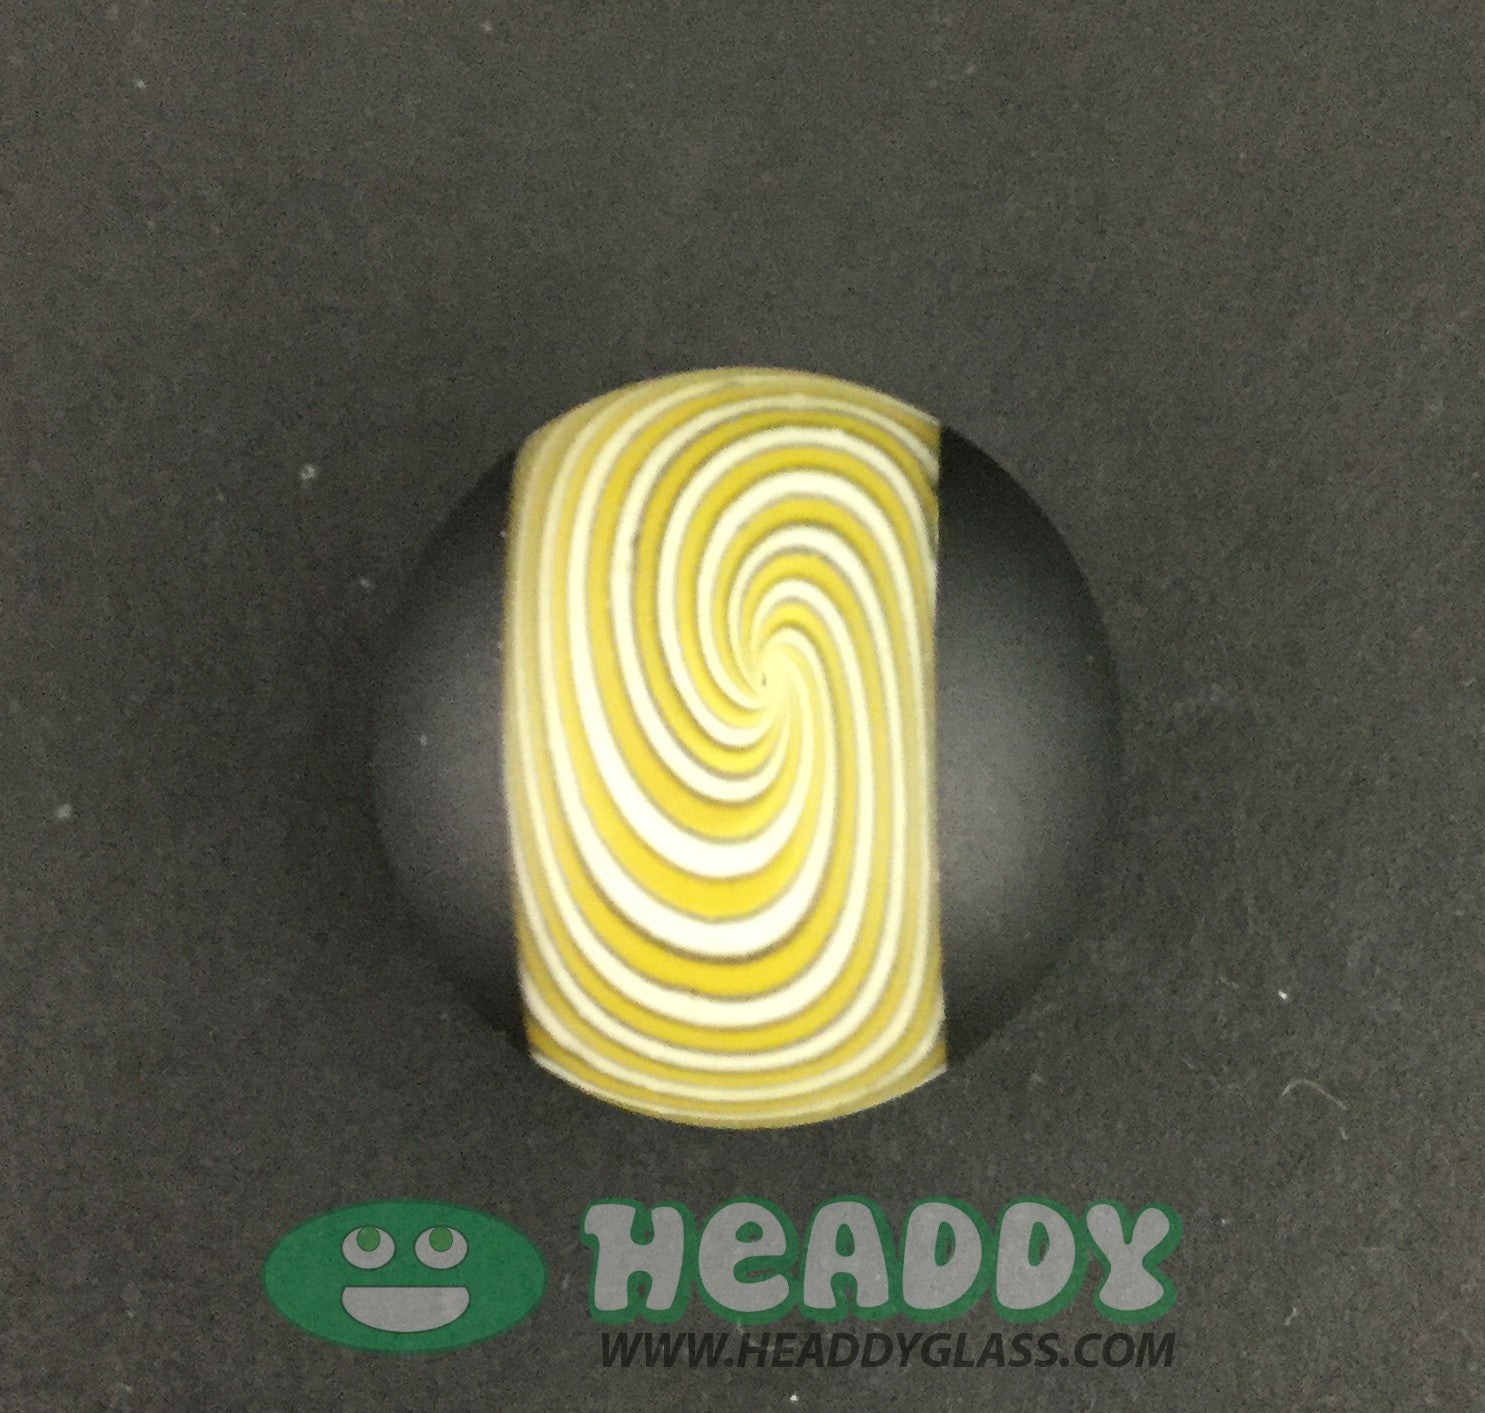 Harold Cooney bead - Headdy Glass